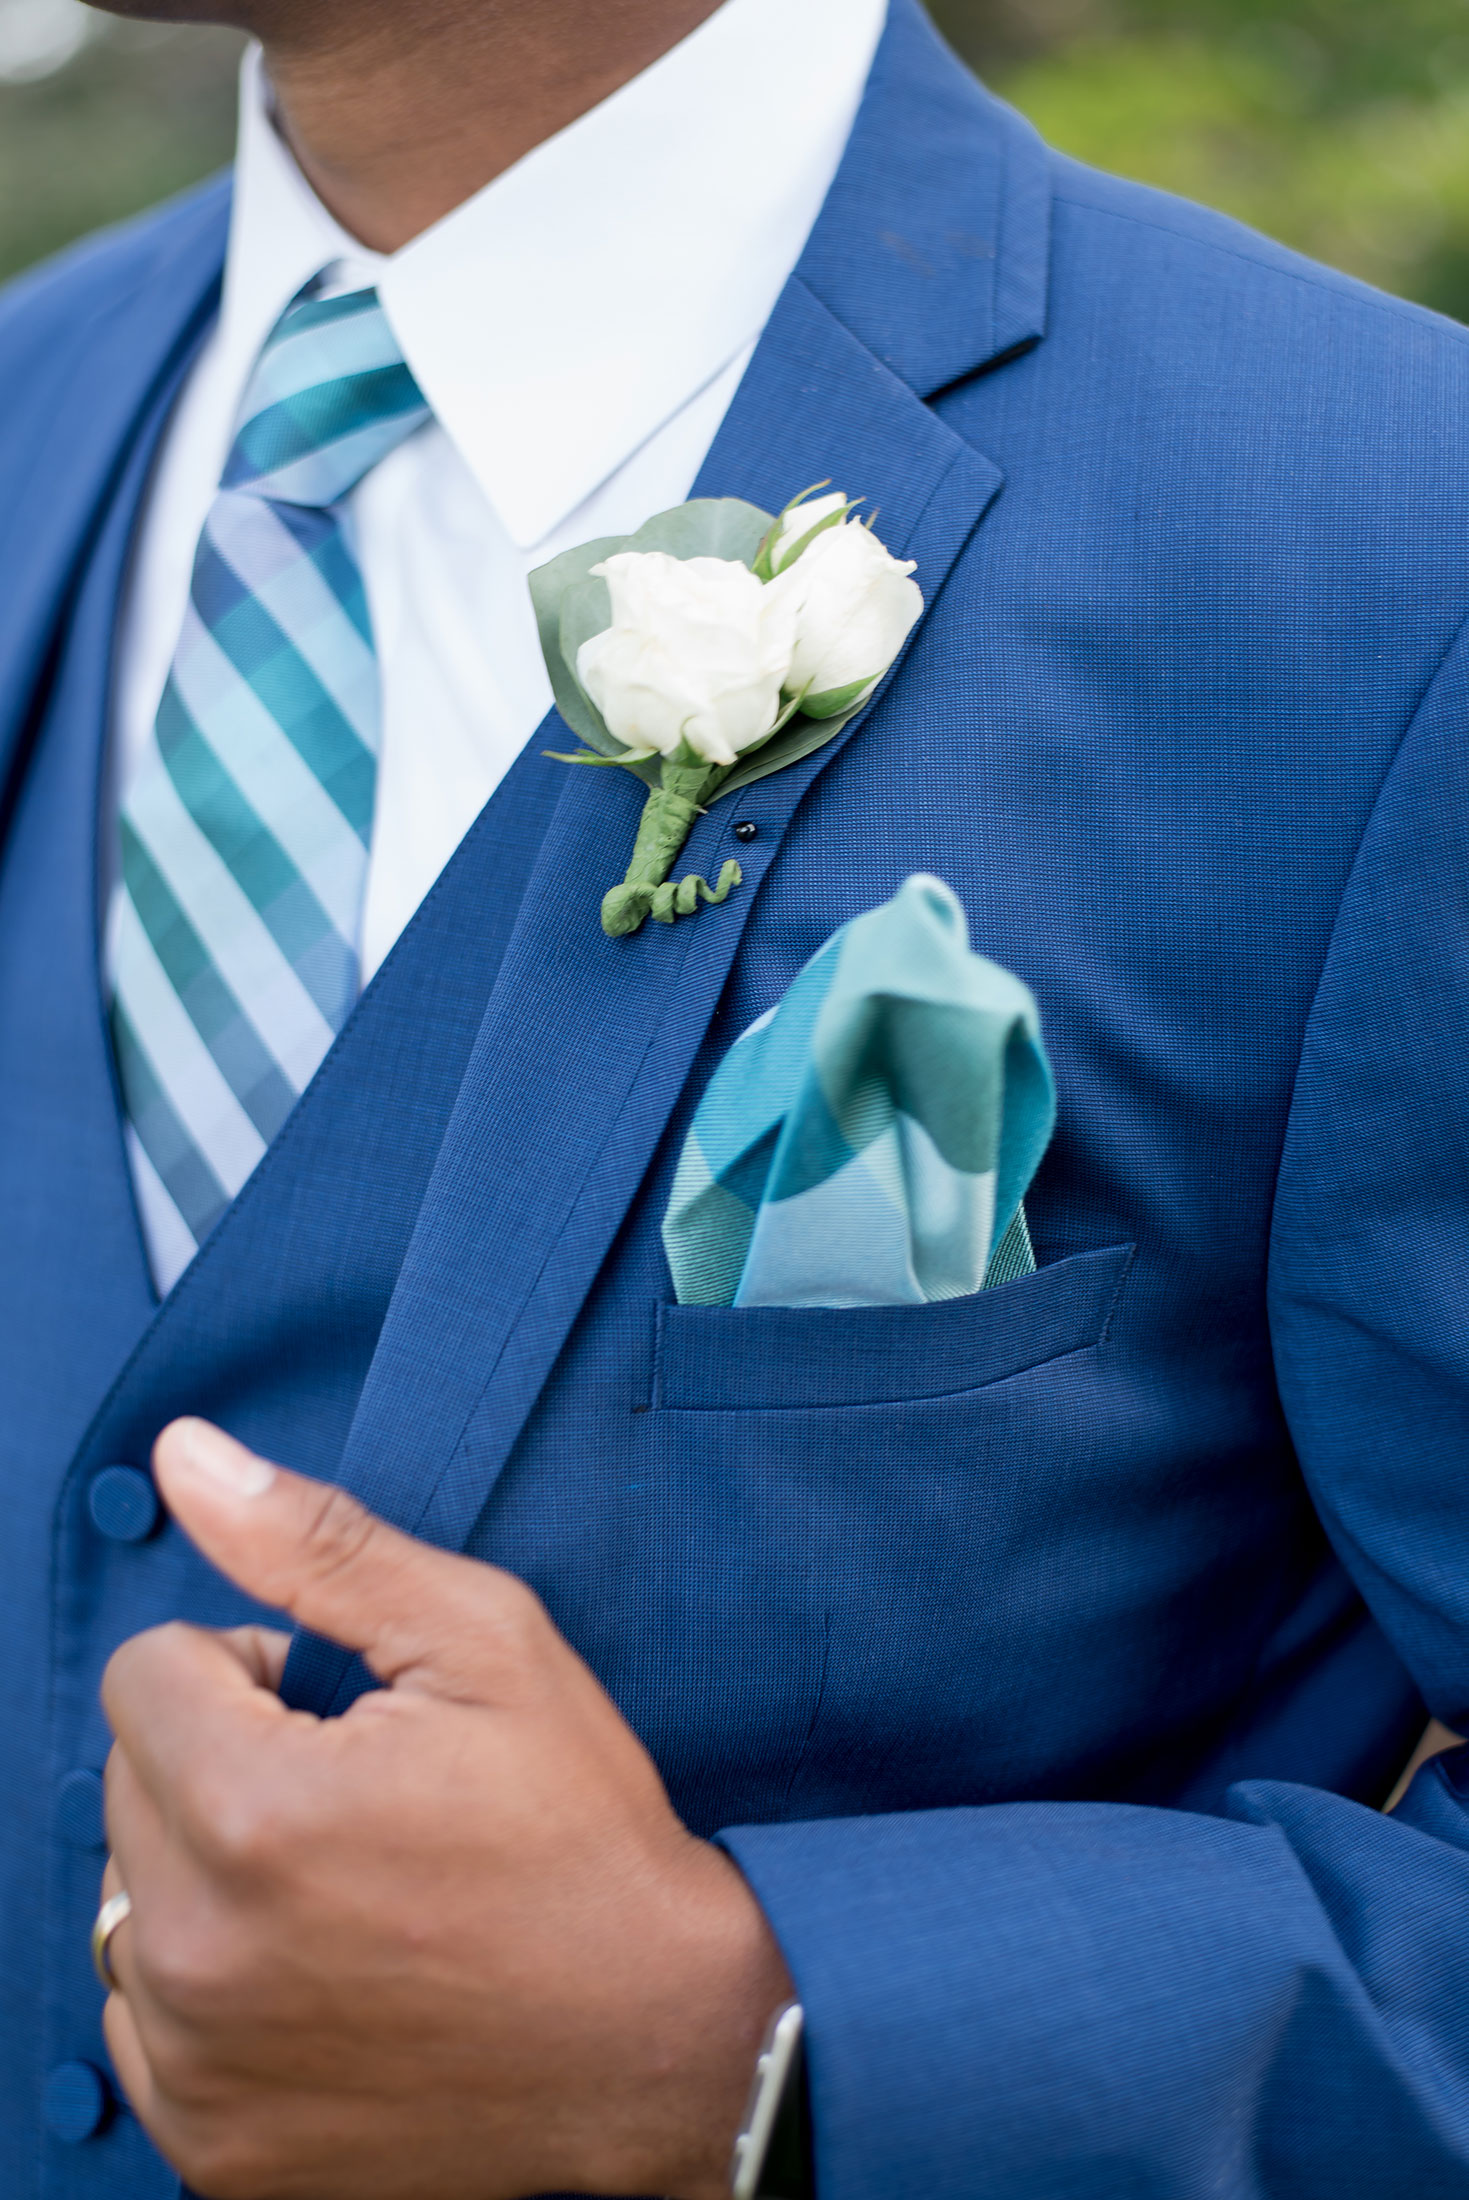 Groom in suit that is Pantone wedding color 2020 classic blue